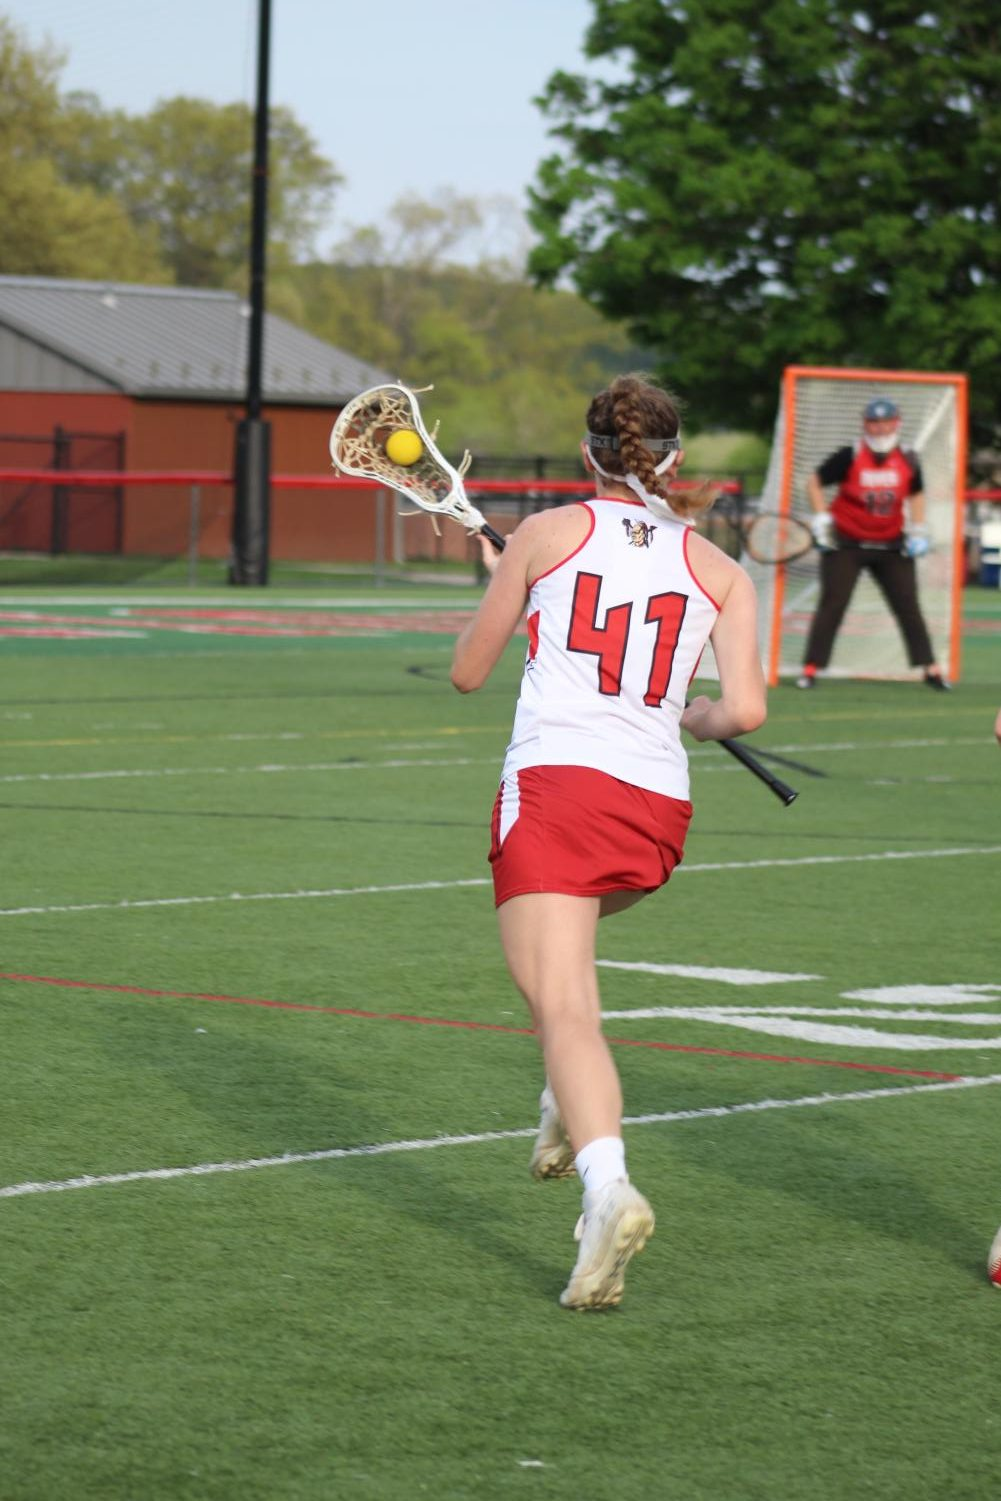 Sophomore+Rachel+Oestrike+runs+the+ball+down+the+sideline+to+get+close+enough+to+take+a+shot.+Oestrike+was+chosen+for+a+second+team+attacker+for+the+YAIAA+girls+lacrosse+all-star+team.+Photograph+by+Stephanie+Graffin